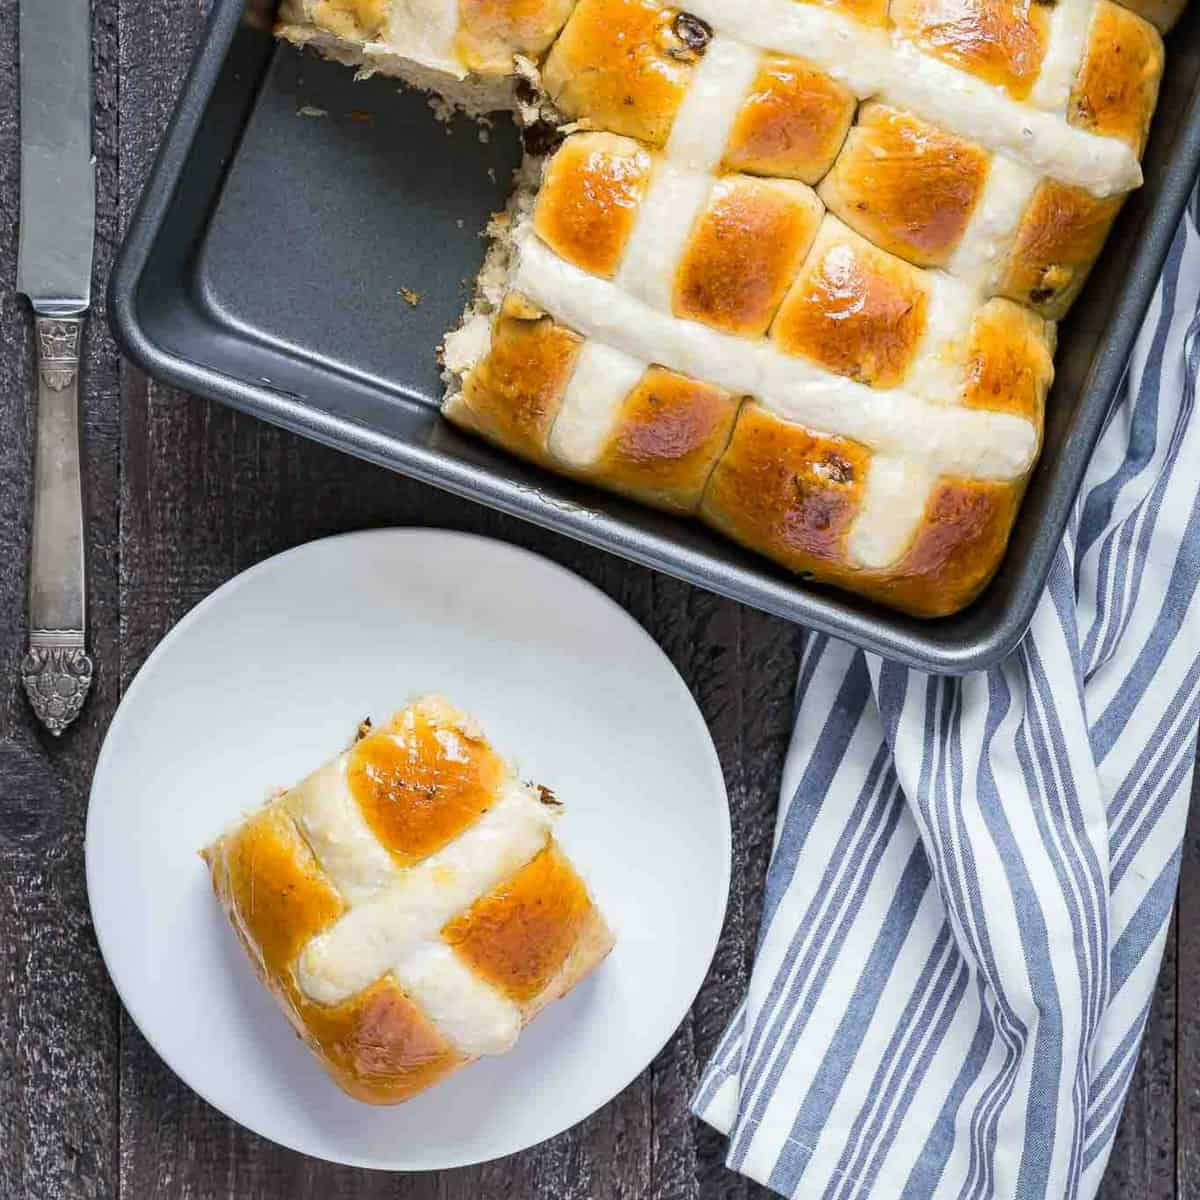 pan of Hot Cross Buns with one taken out and placed on a plate